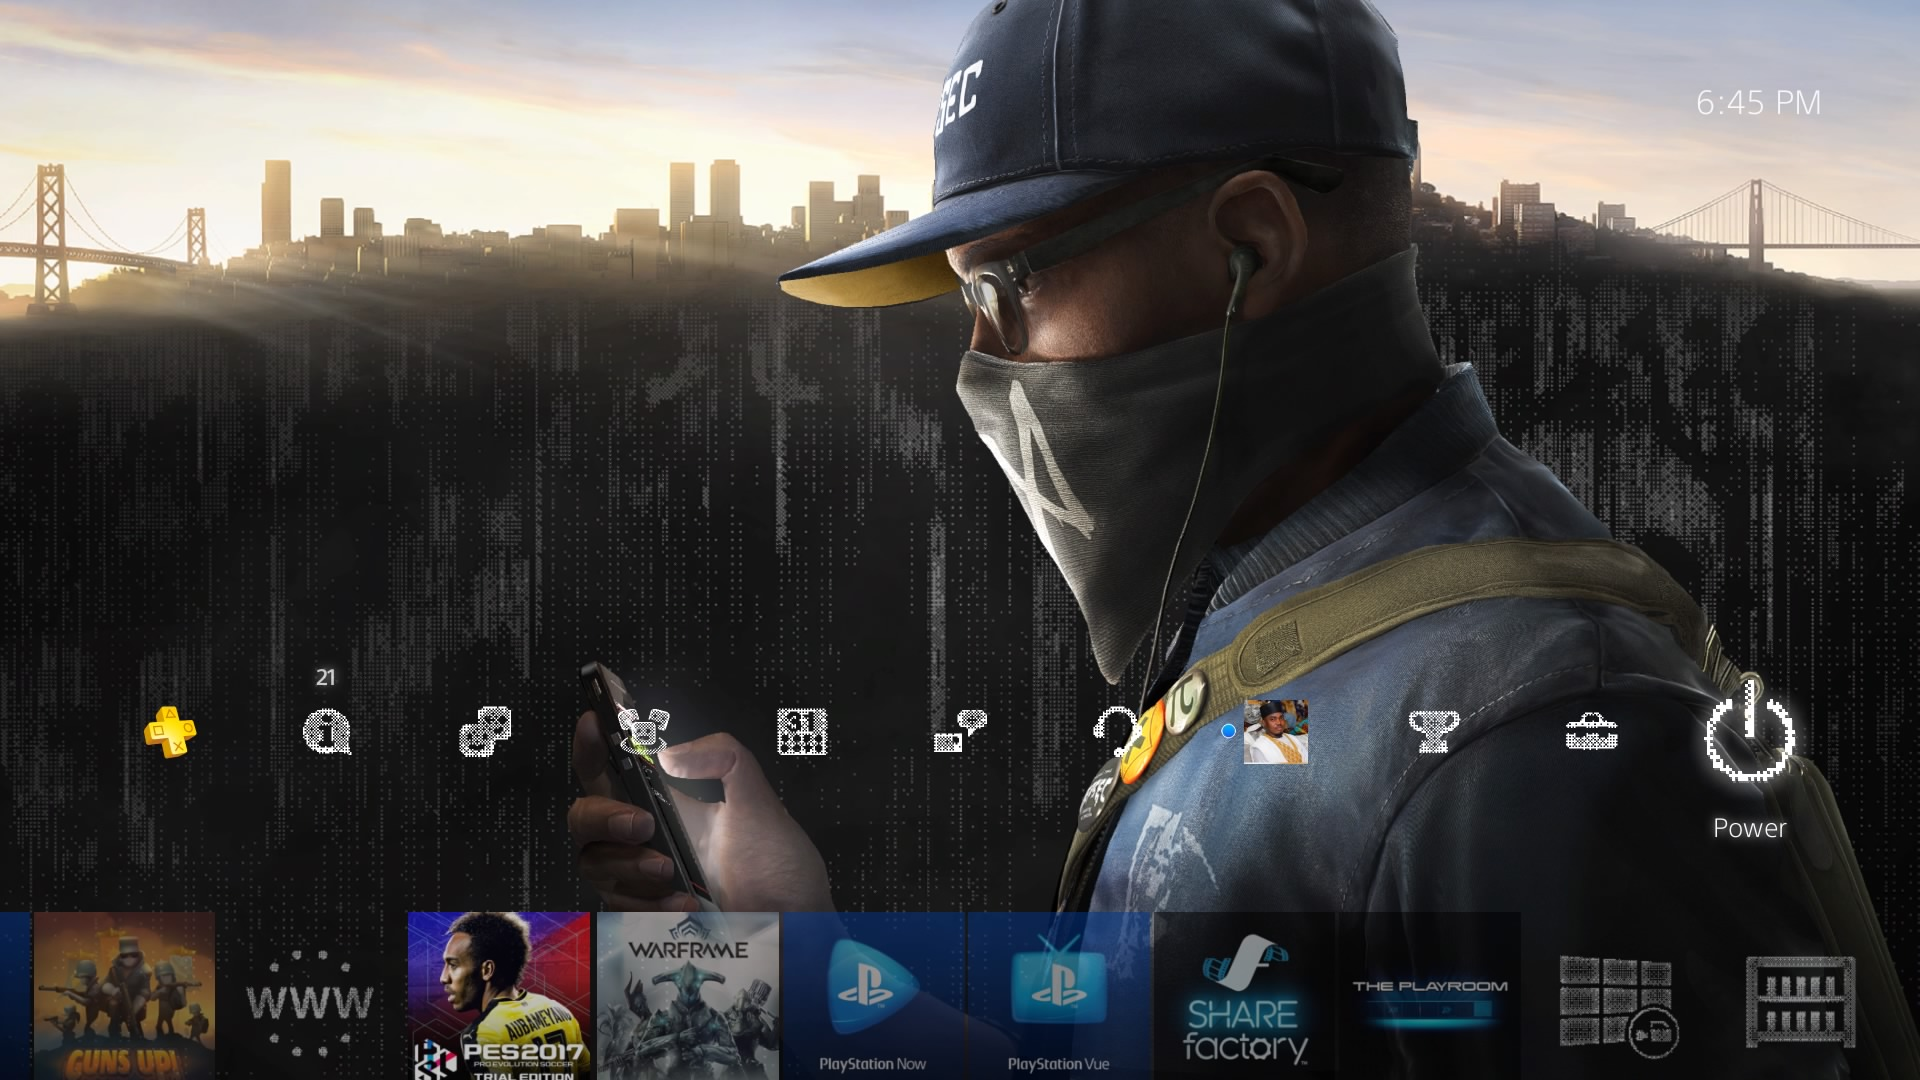 ProvenHow To Increase Apps And Games Download Speed On PS4